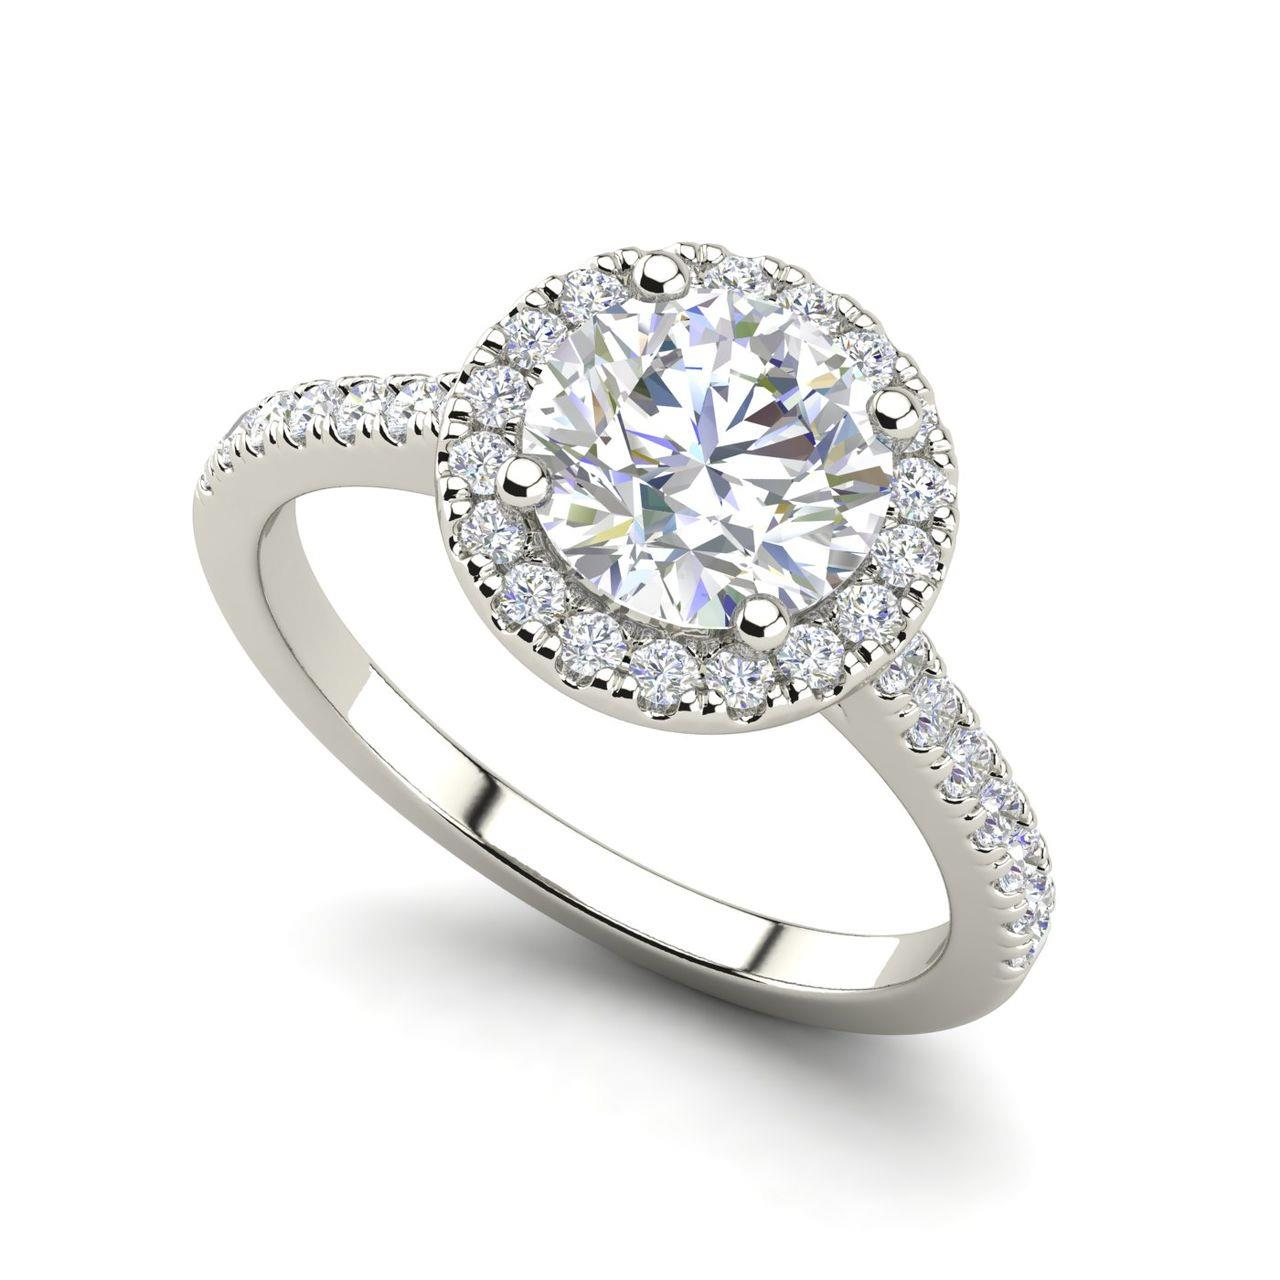 Pave Halo 0.95 Carat Round Cut Diamond Engagement Ring